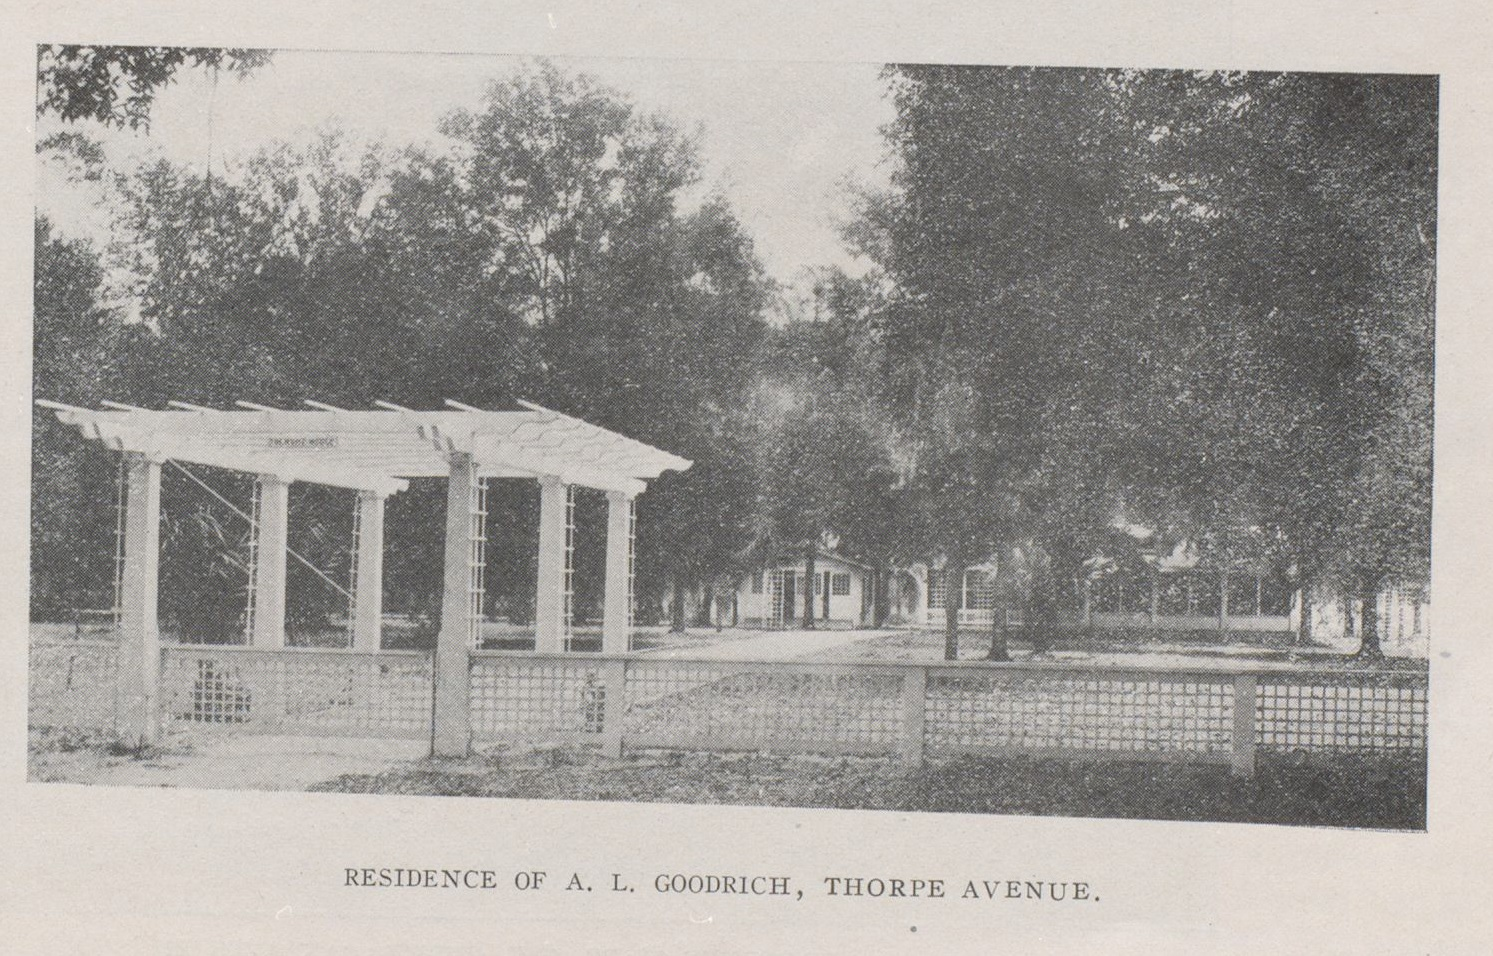 Residence of A.L. Goodrich North Thorpe Avenue